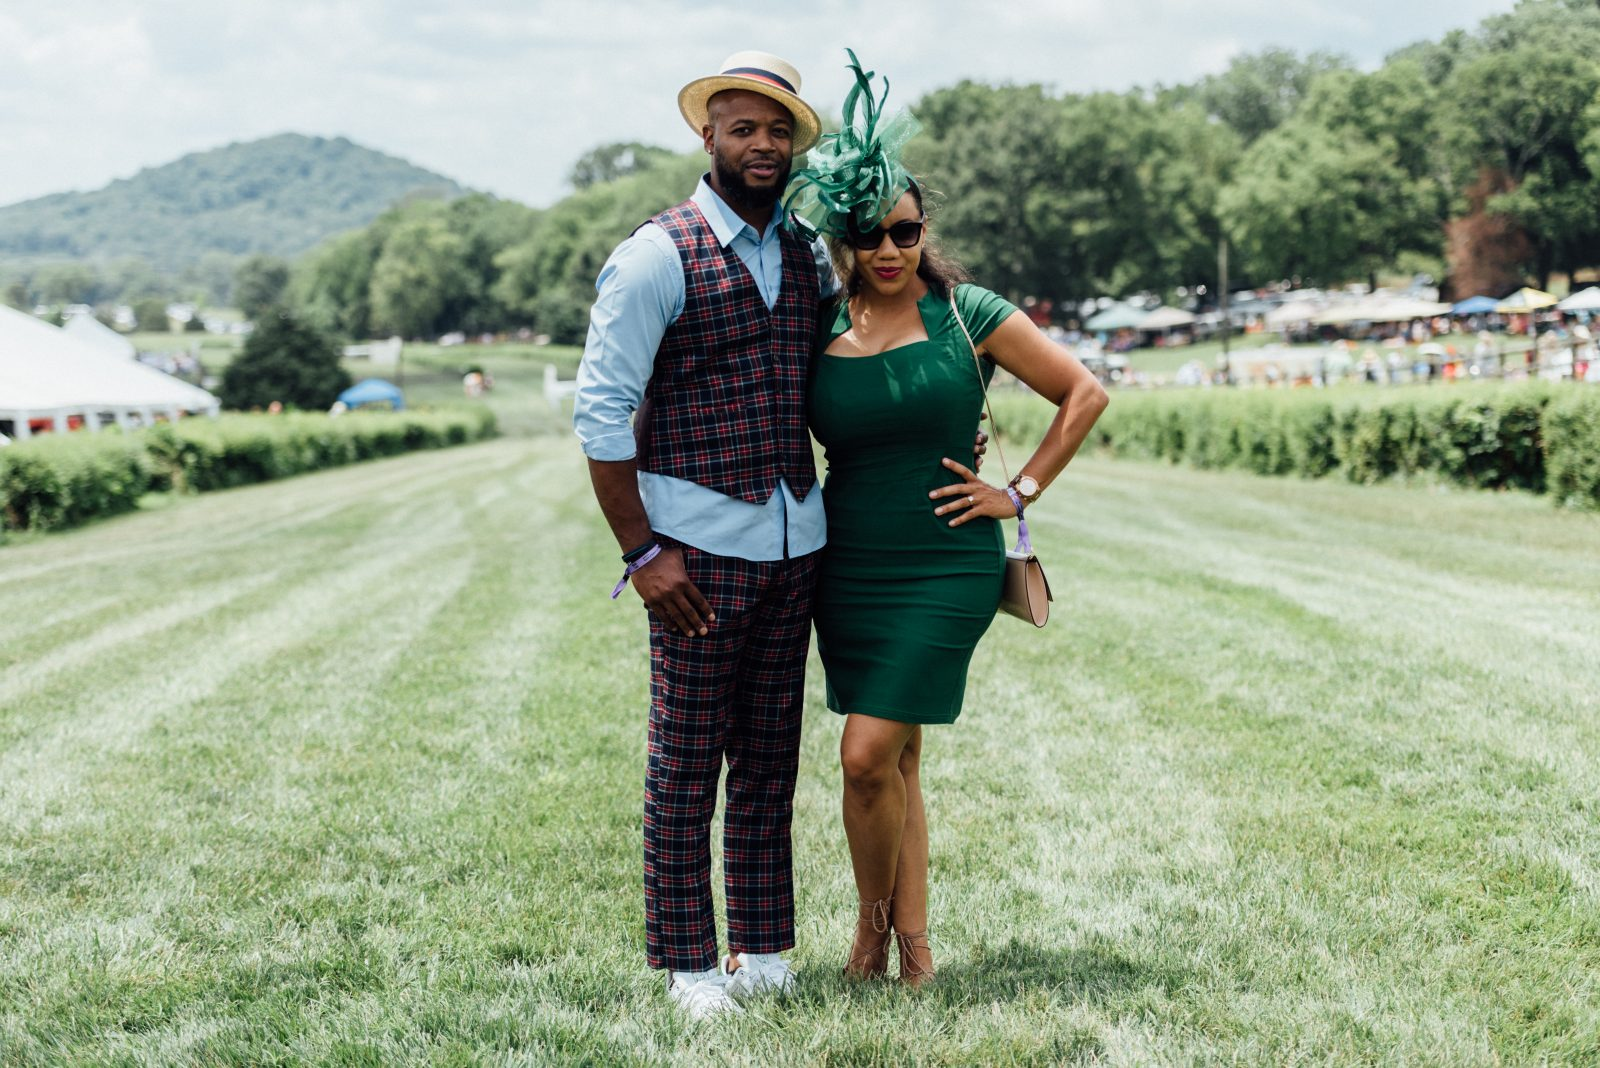 Michael and Alisha James at the 2021 Tennessee Steeplechase Outdoor Fashion show, featured in the Nashville Edit